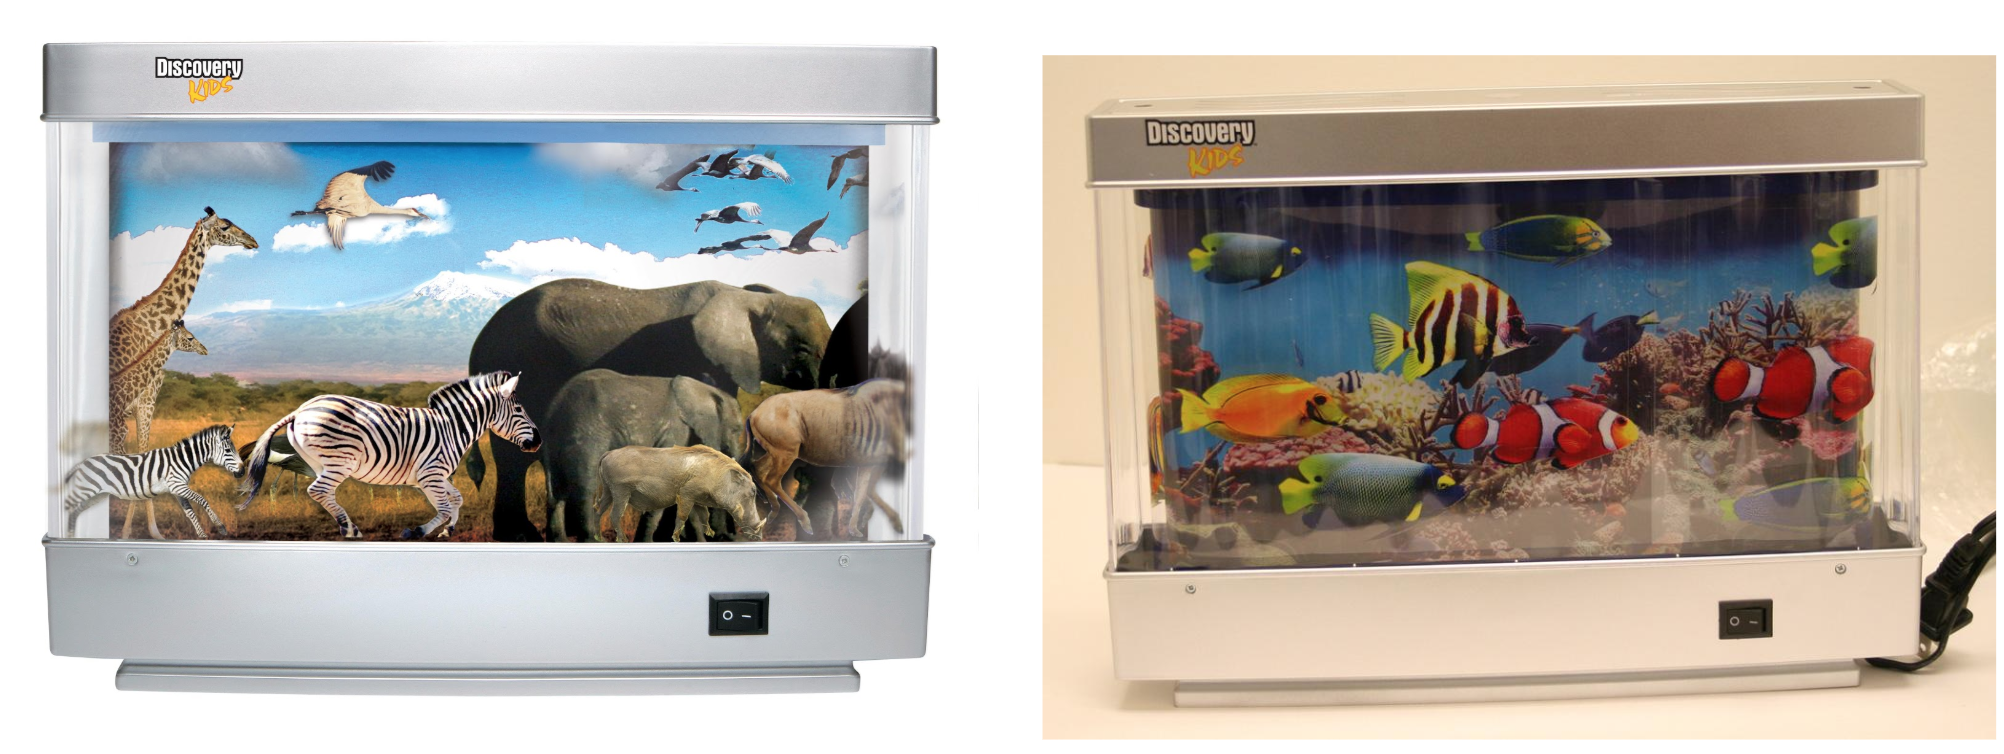 Innovage Discovery Kids™ Animated Marine and Safari Lamps